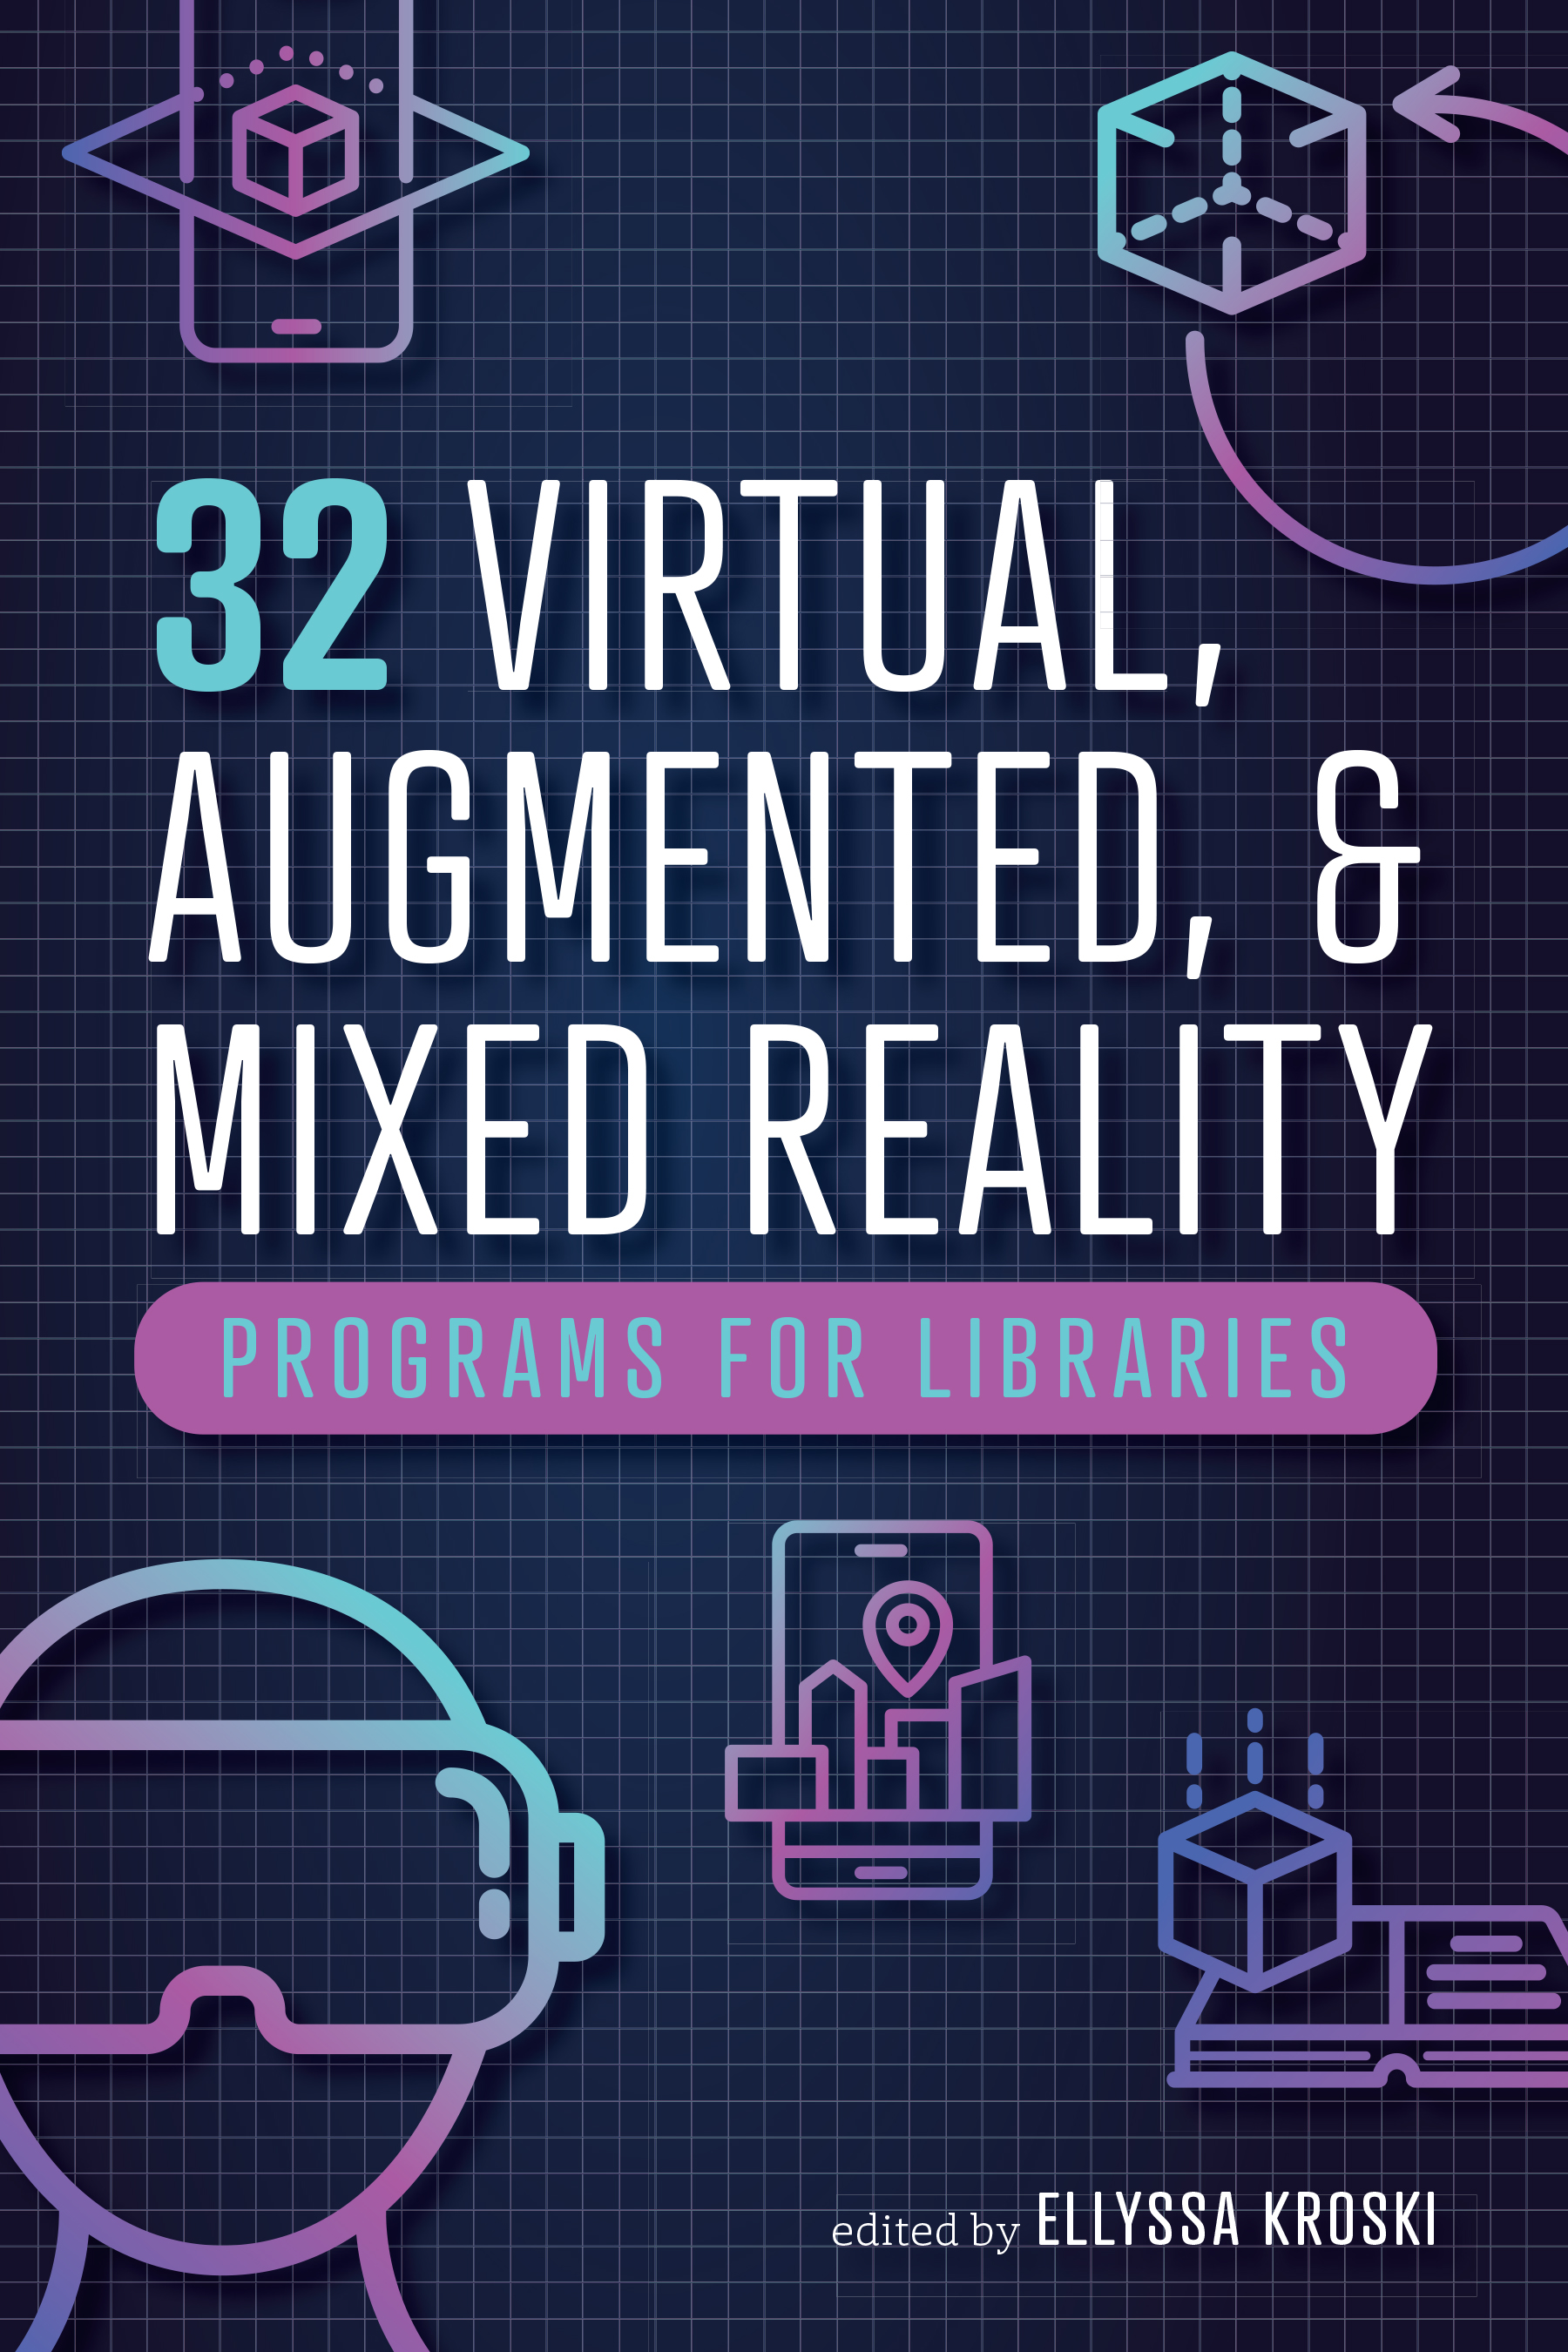 Image for 32 Virtual, Augmented, and Mixed Reality Programs for Libraries